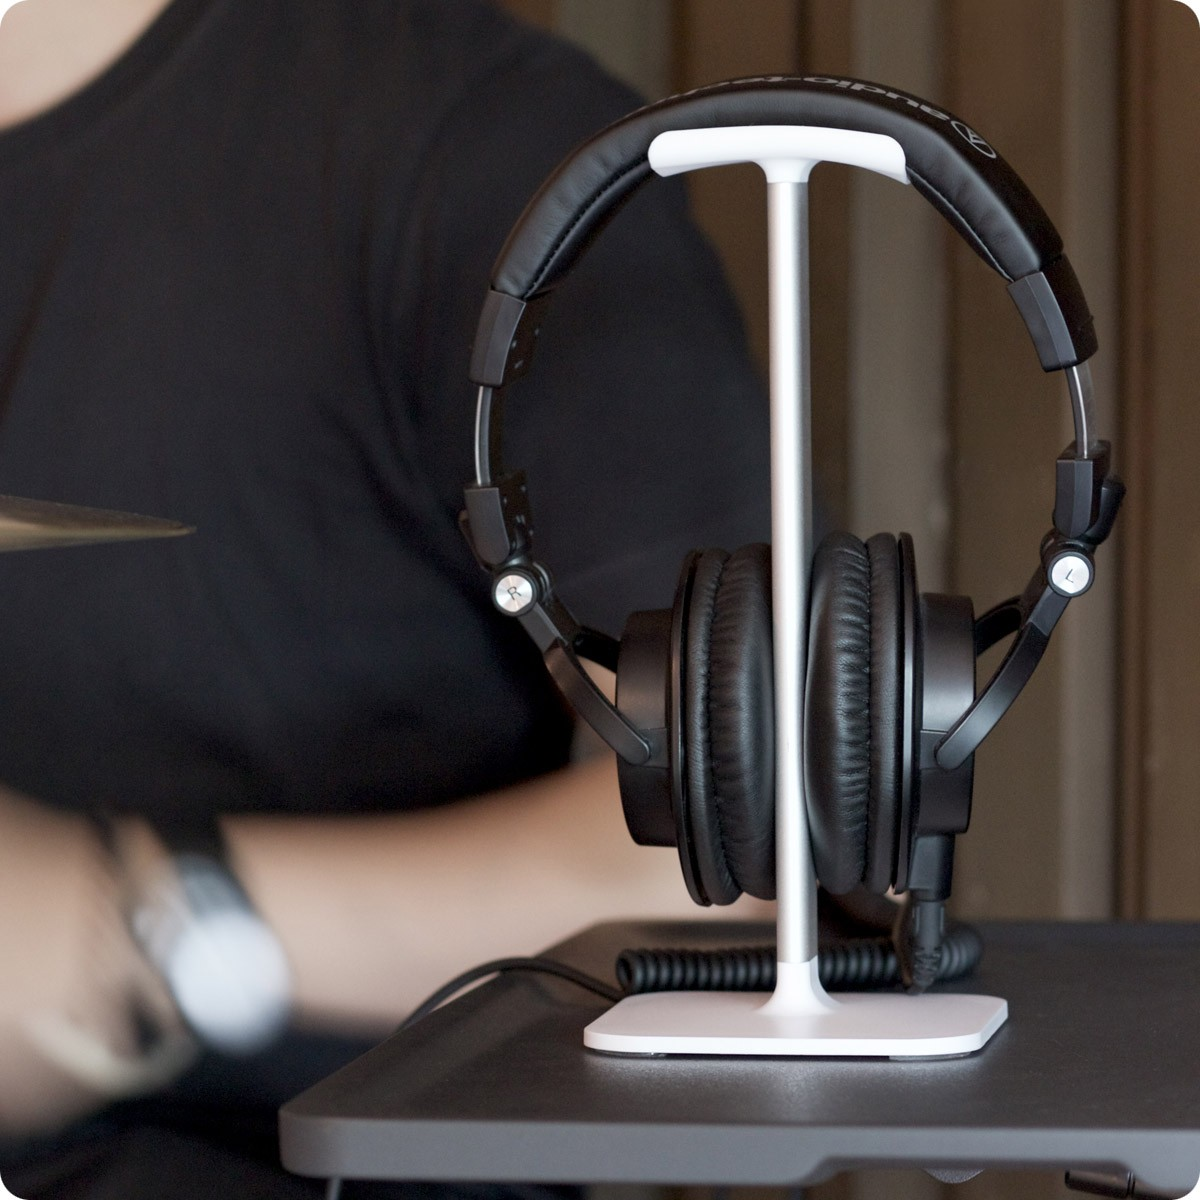 **DISCONTINUED** Bluelounge Posto Universal Headphone Stand - White, BL-PO-WH